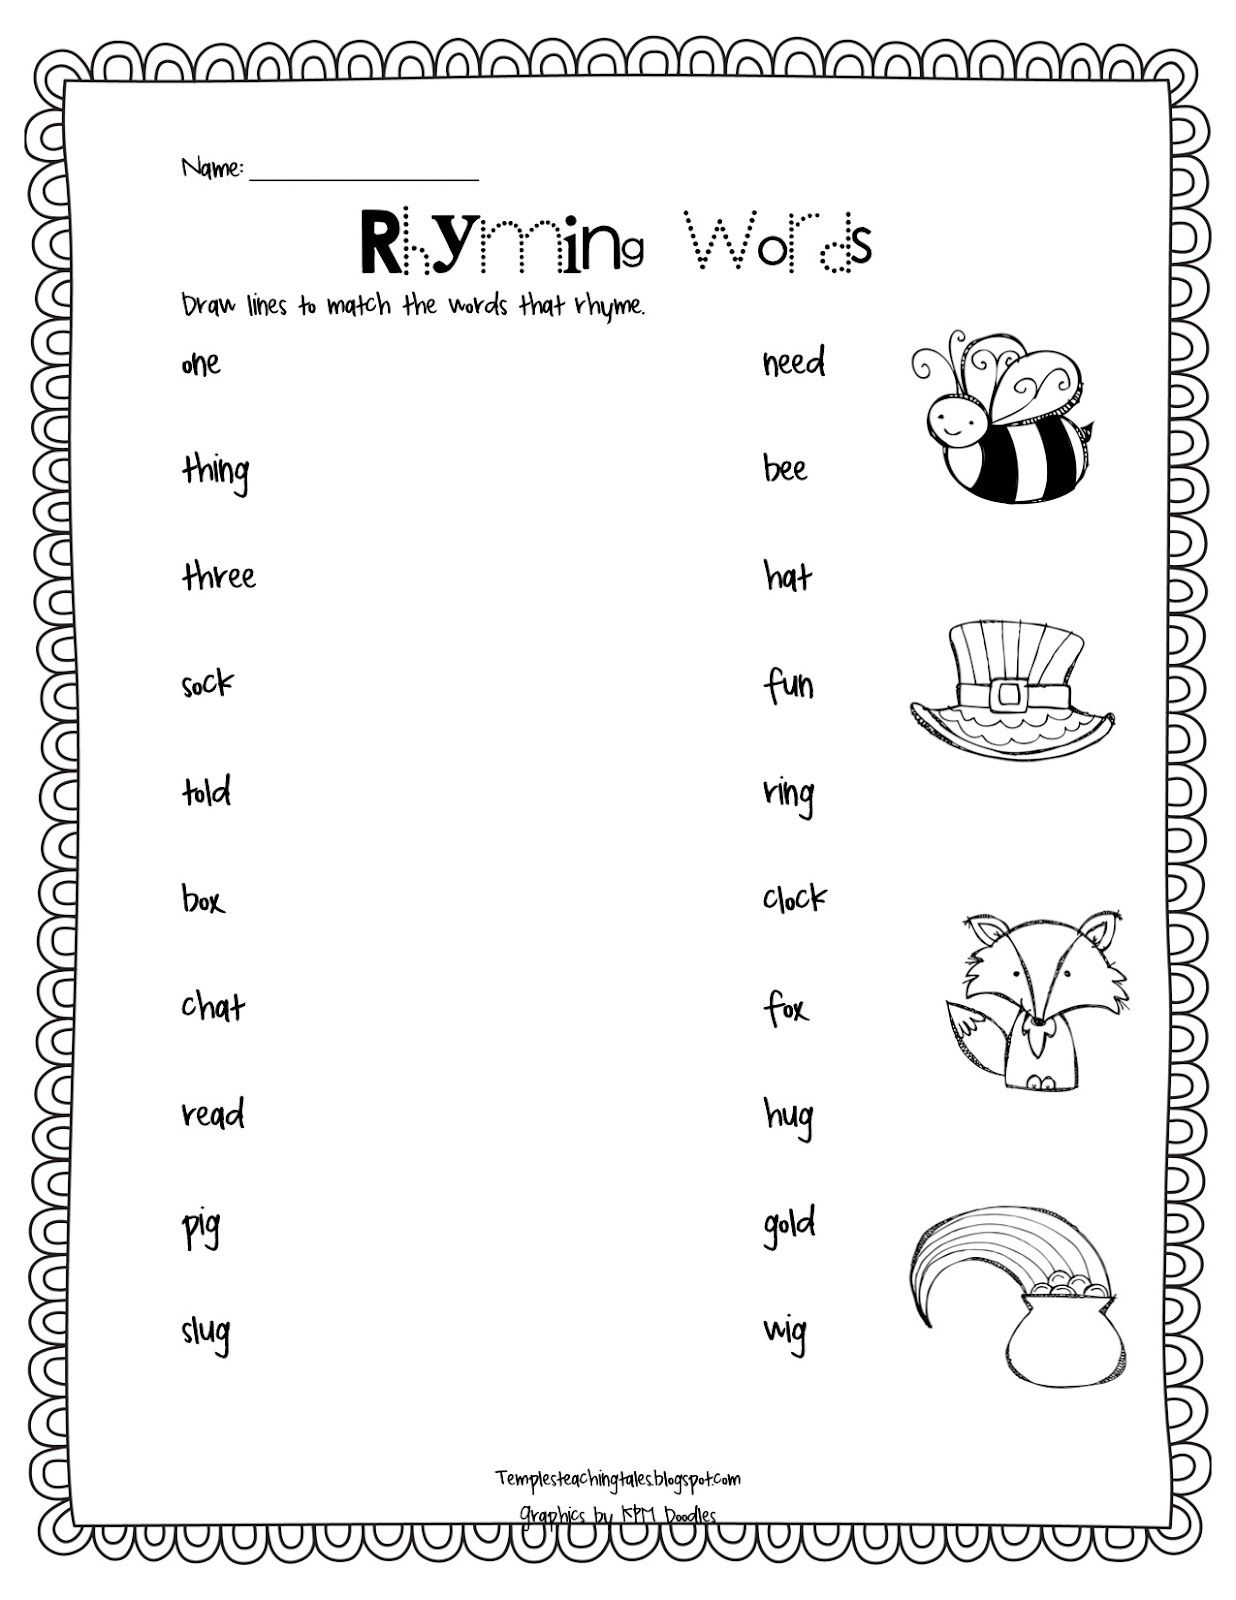 worksheet Worksheet Rhyming Words rhyming words match up temples teaching tales for the classroom tales